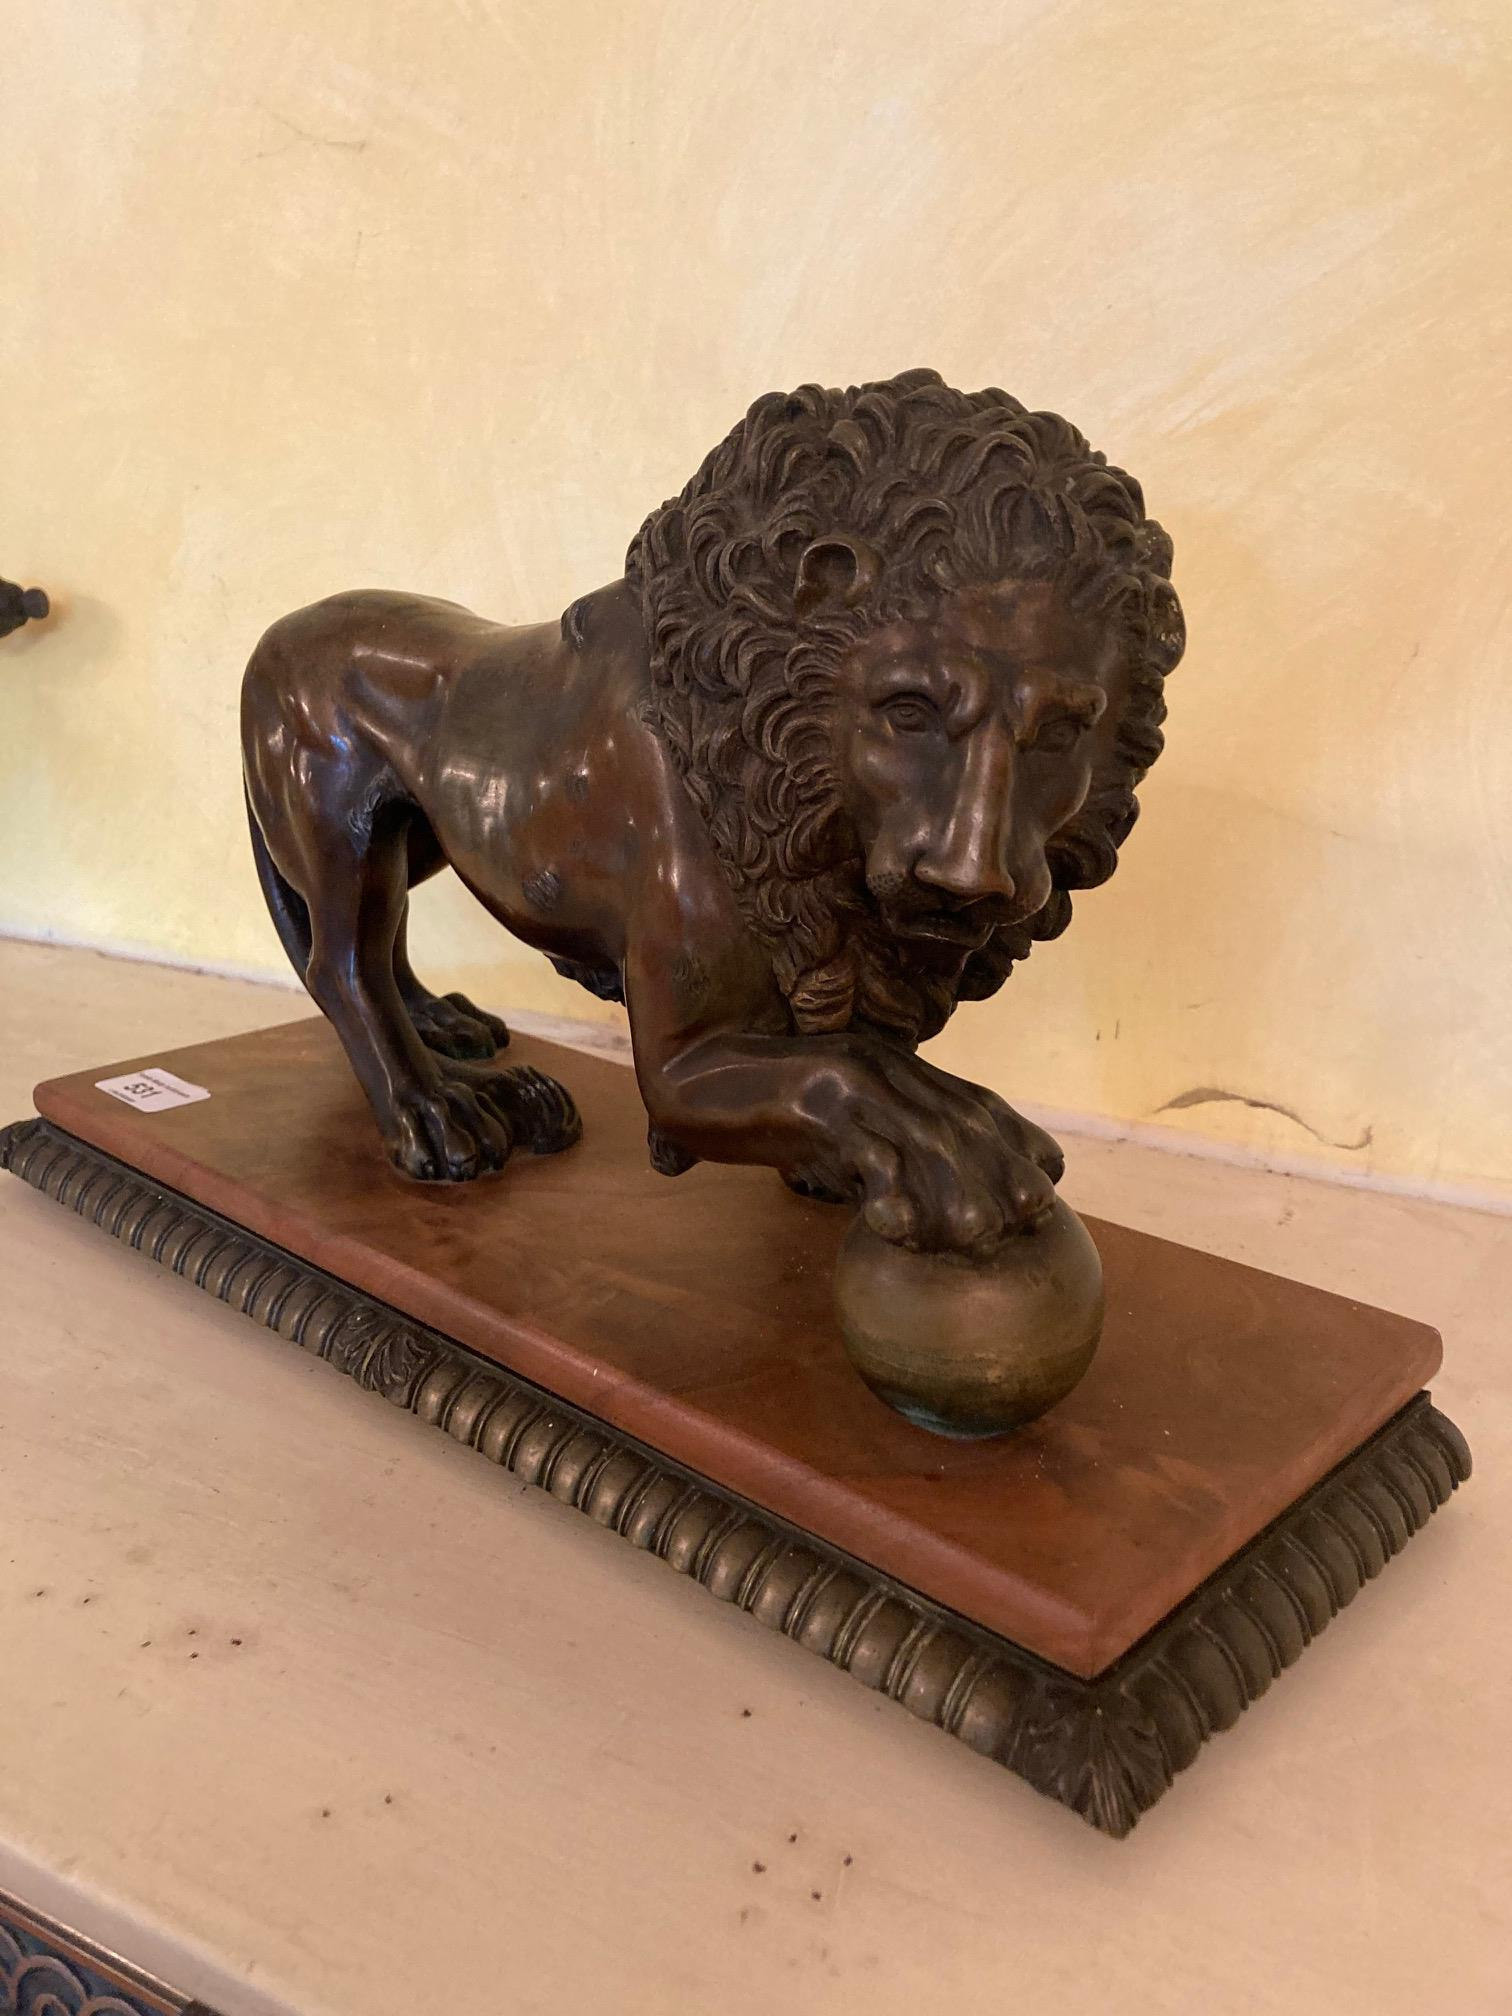 A bronze Figure of a Medici Lion, with right front paw on a sphere, on bronze and wooden base, - Image 2 of 6